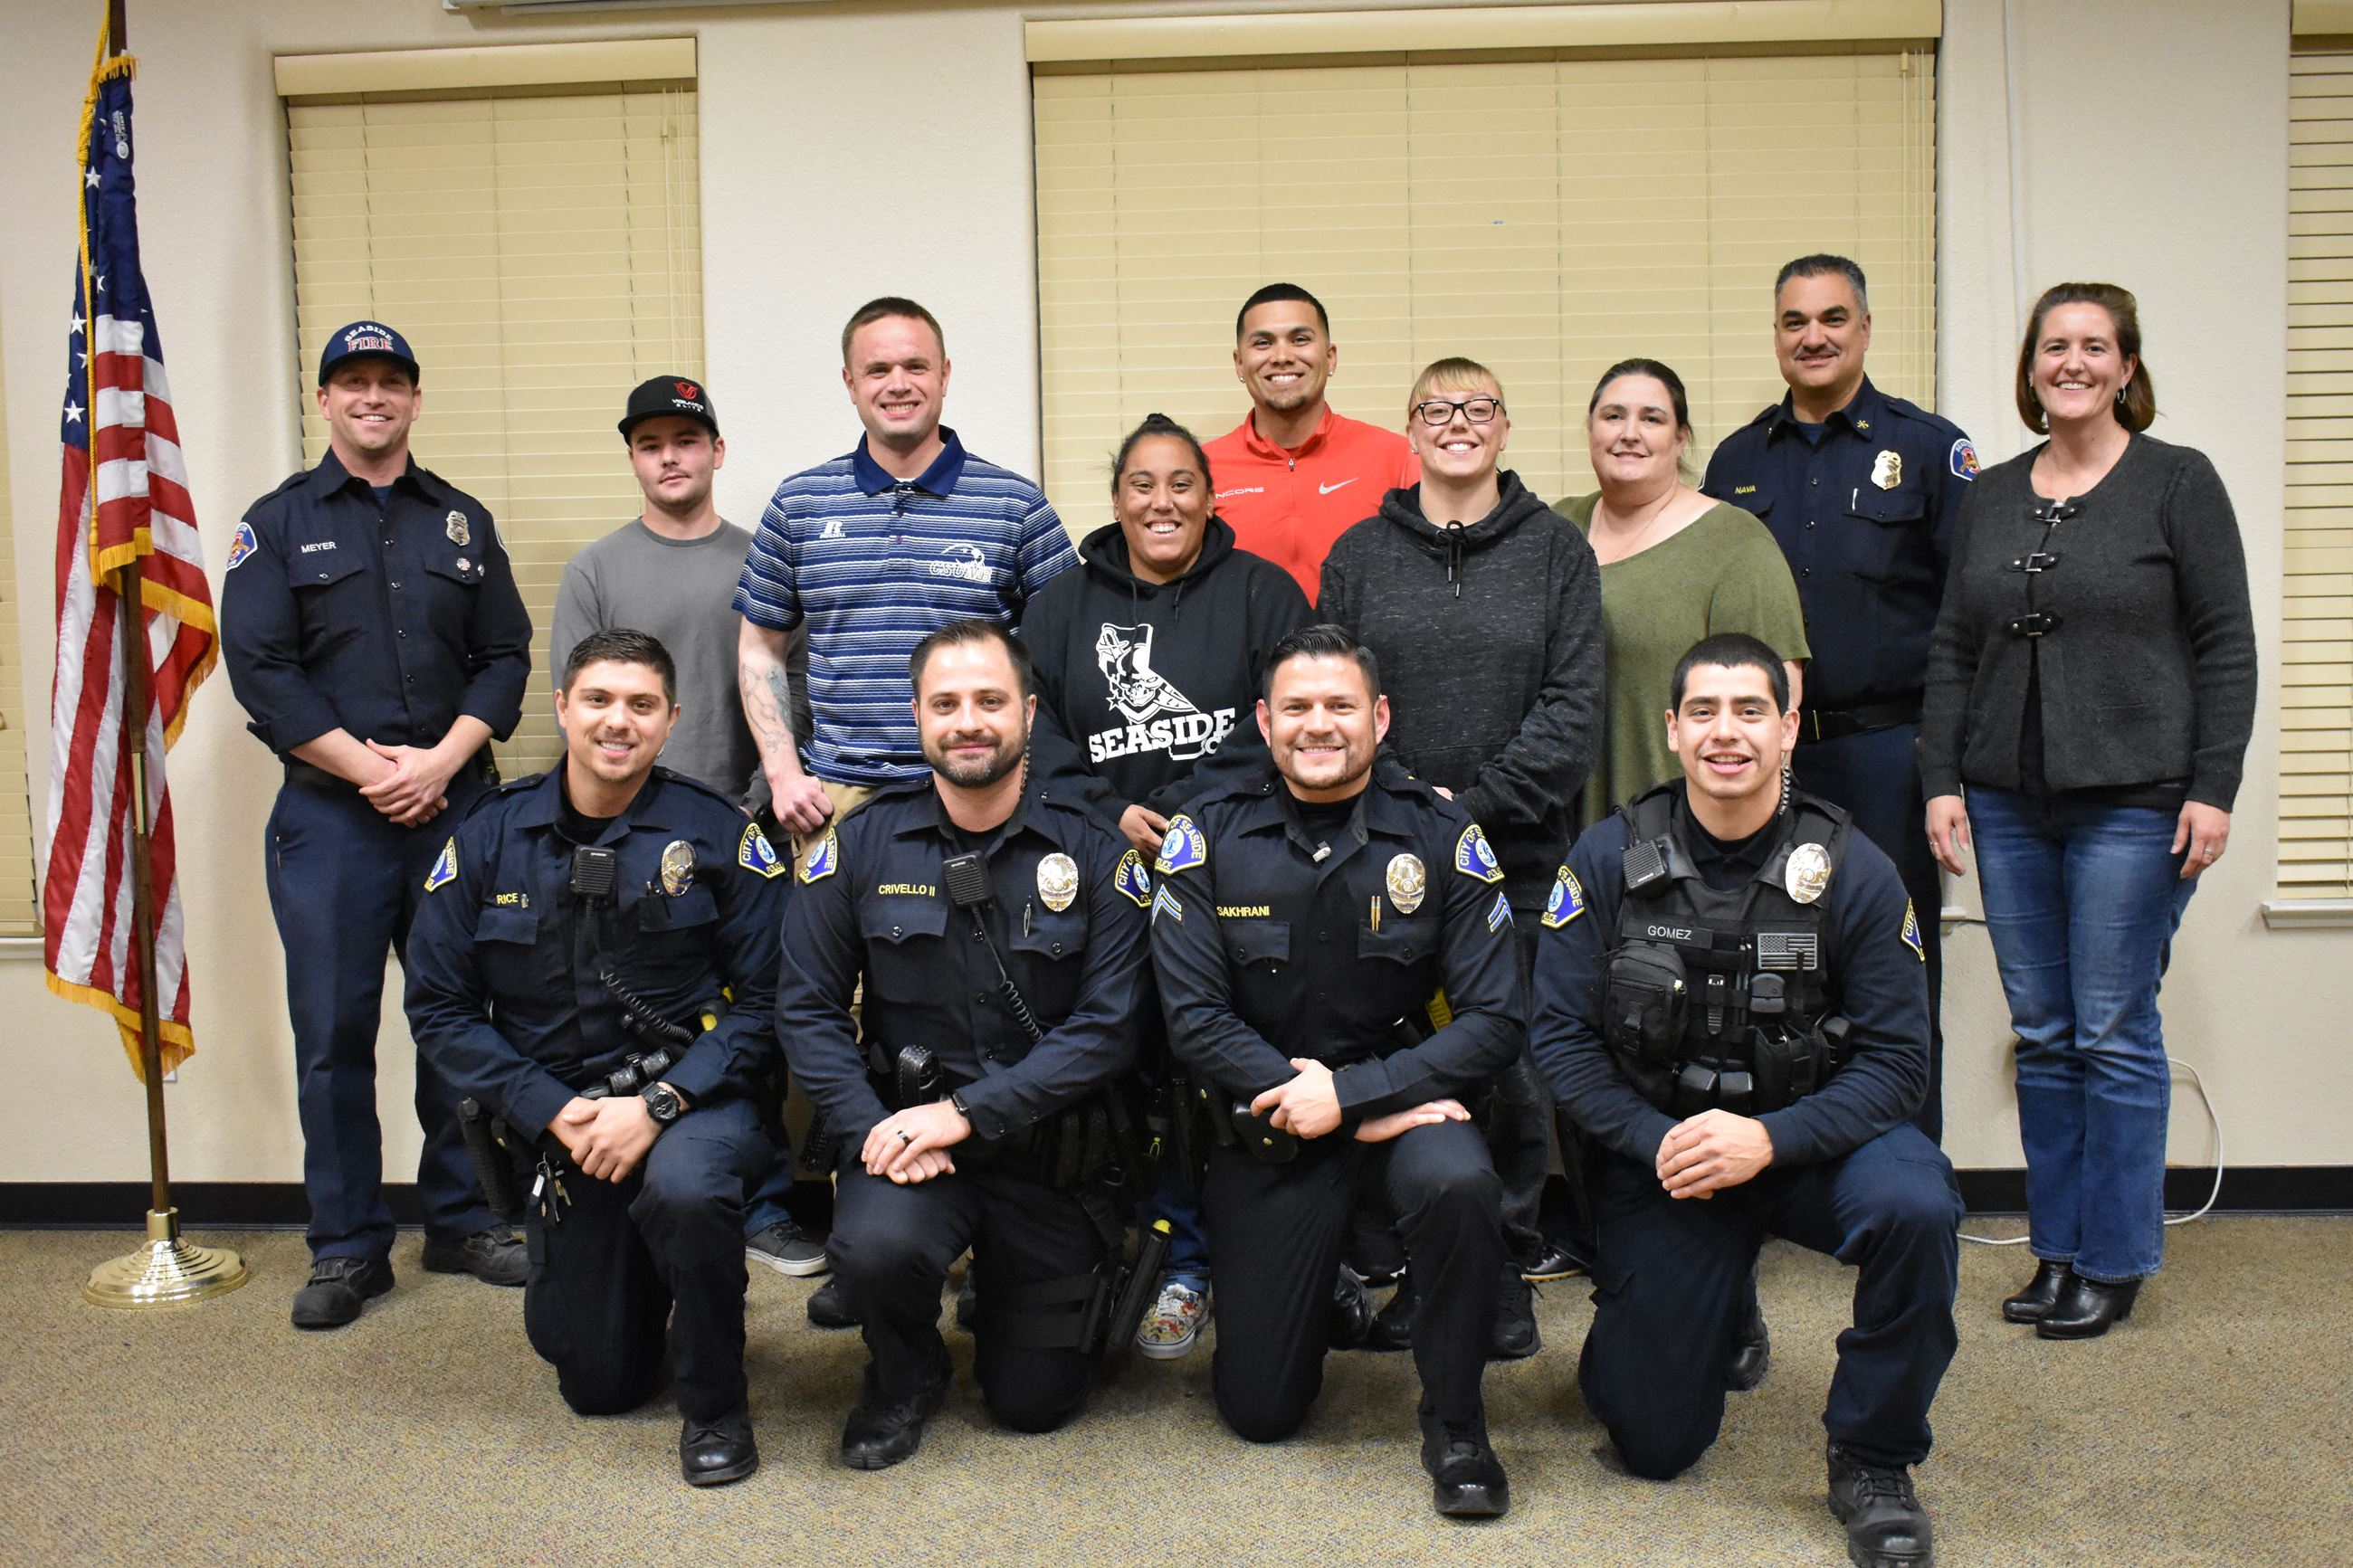 Class Photo of the Public Safety Citizens Academy